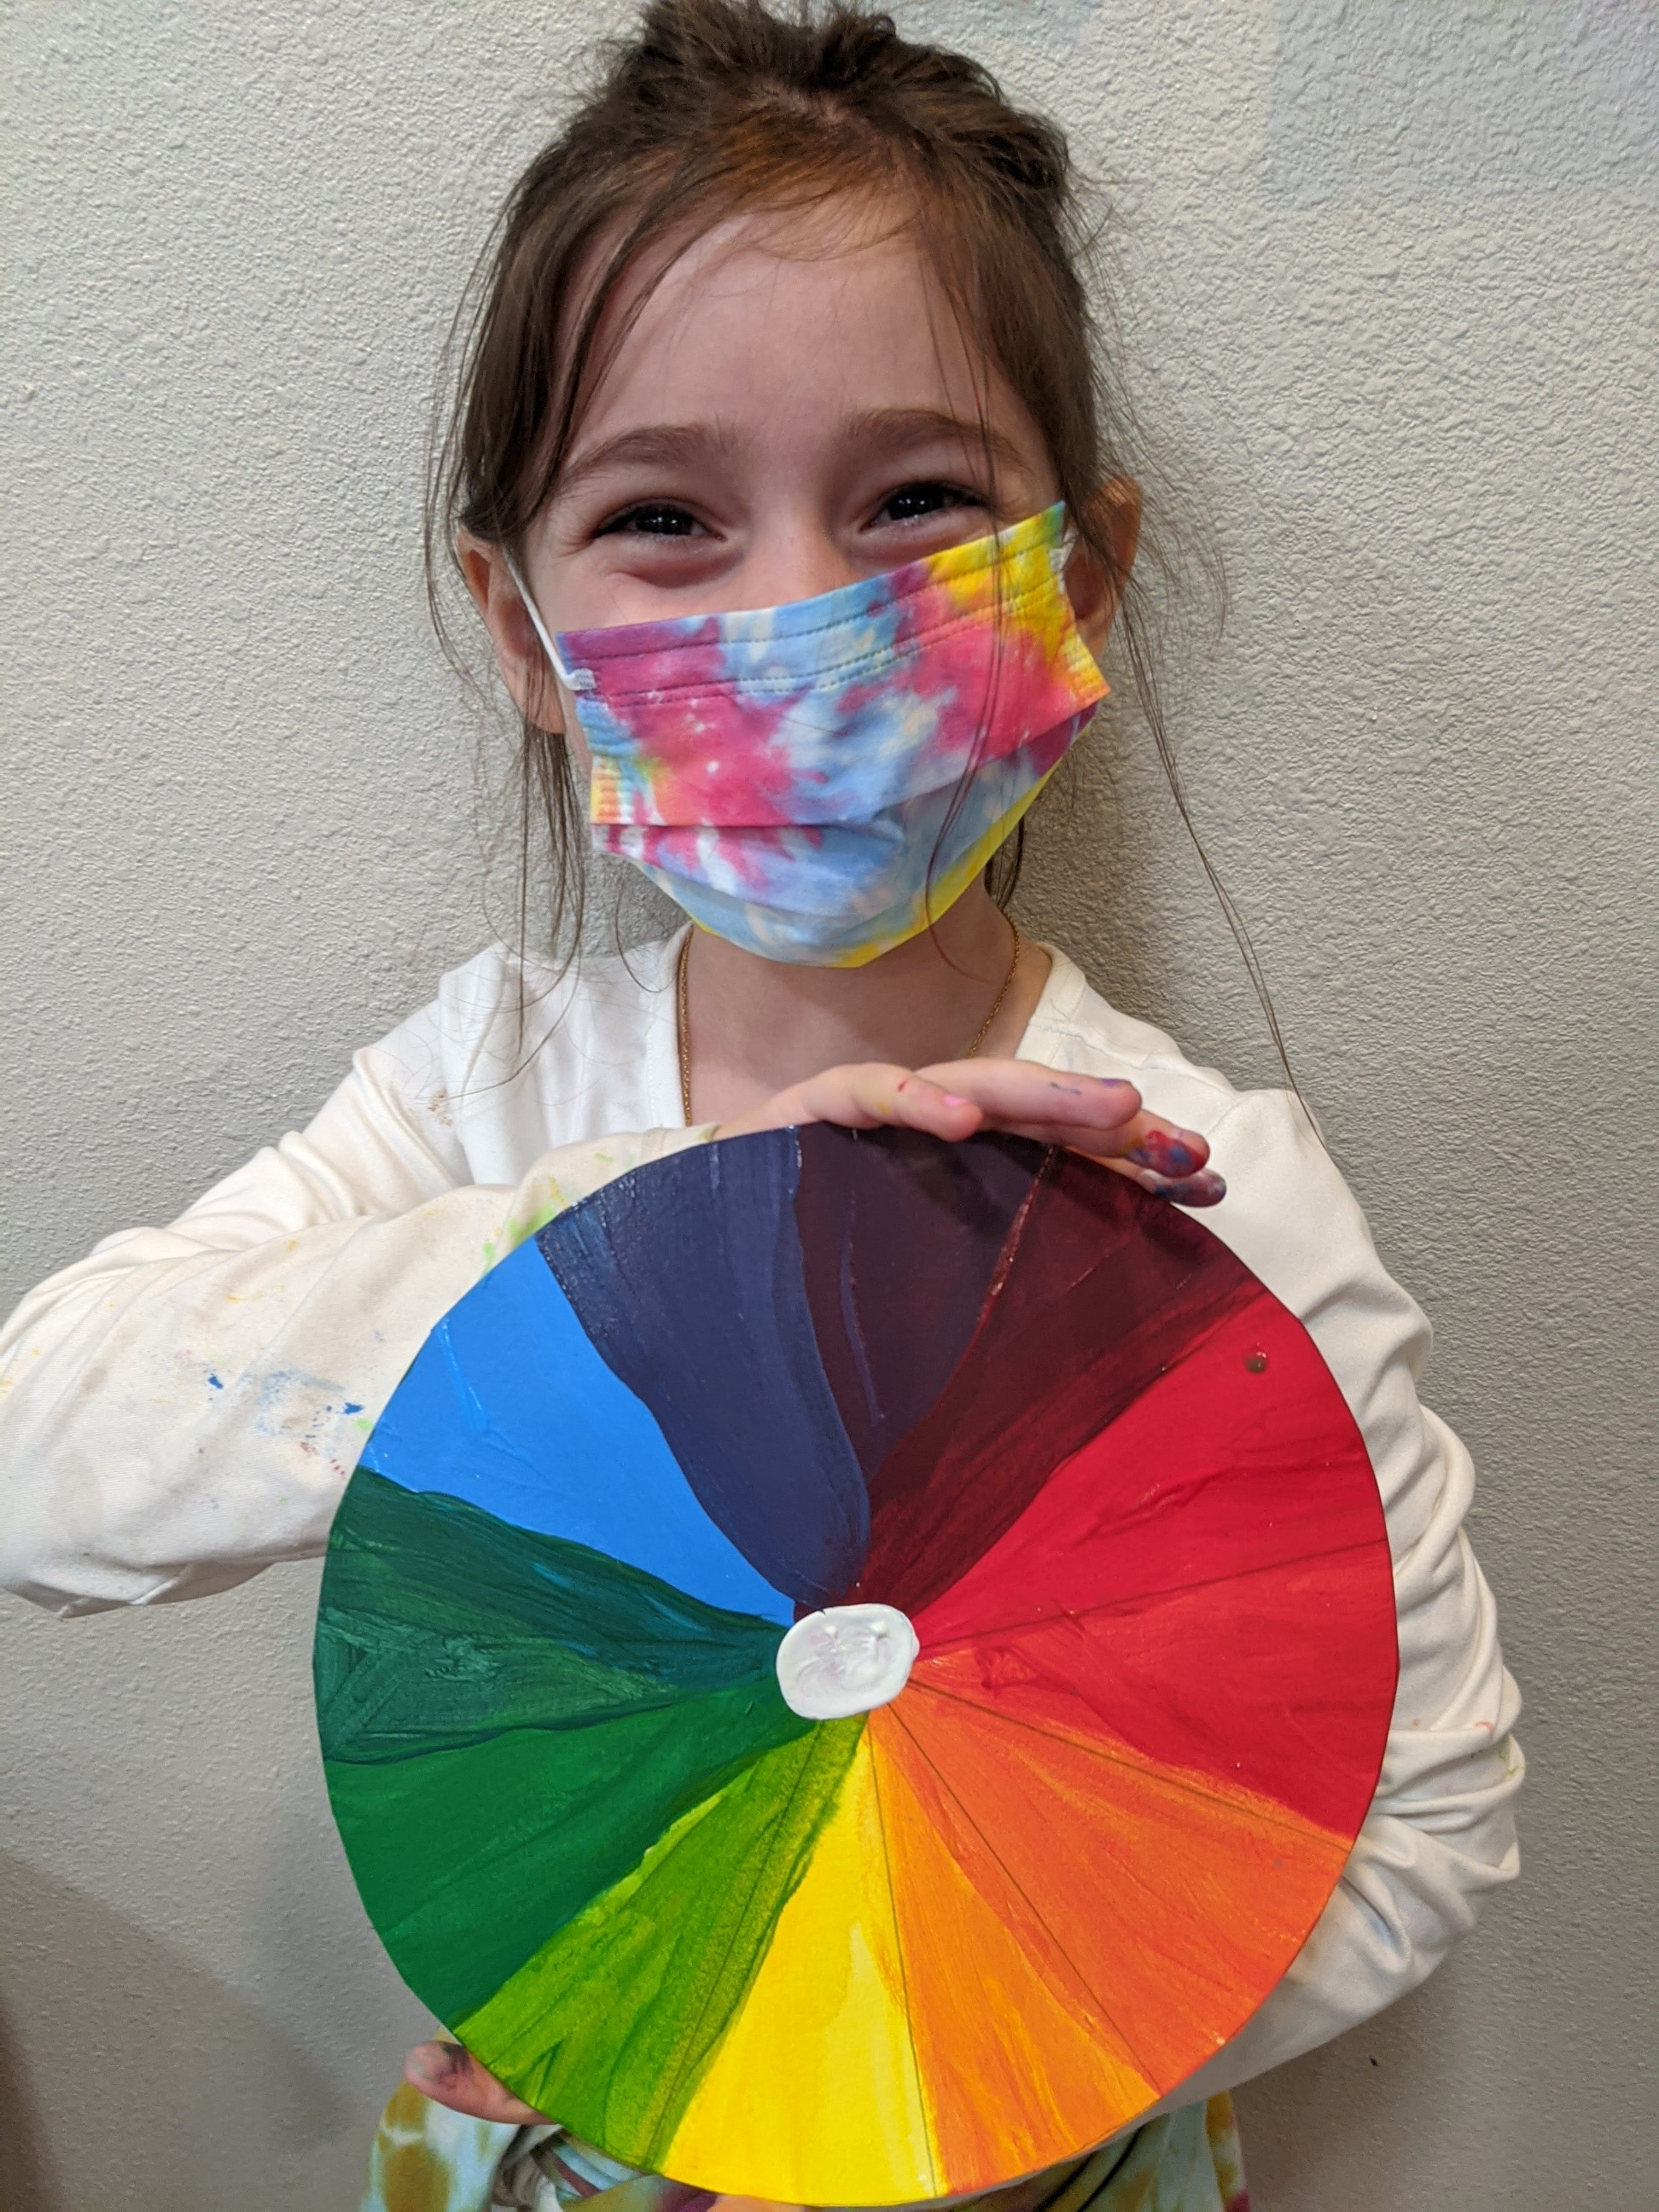 Color Theory - 8 classes, ages 6-12